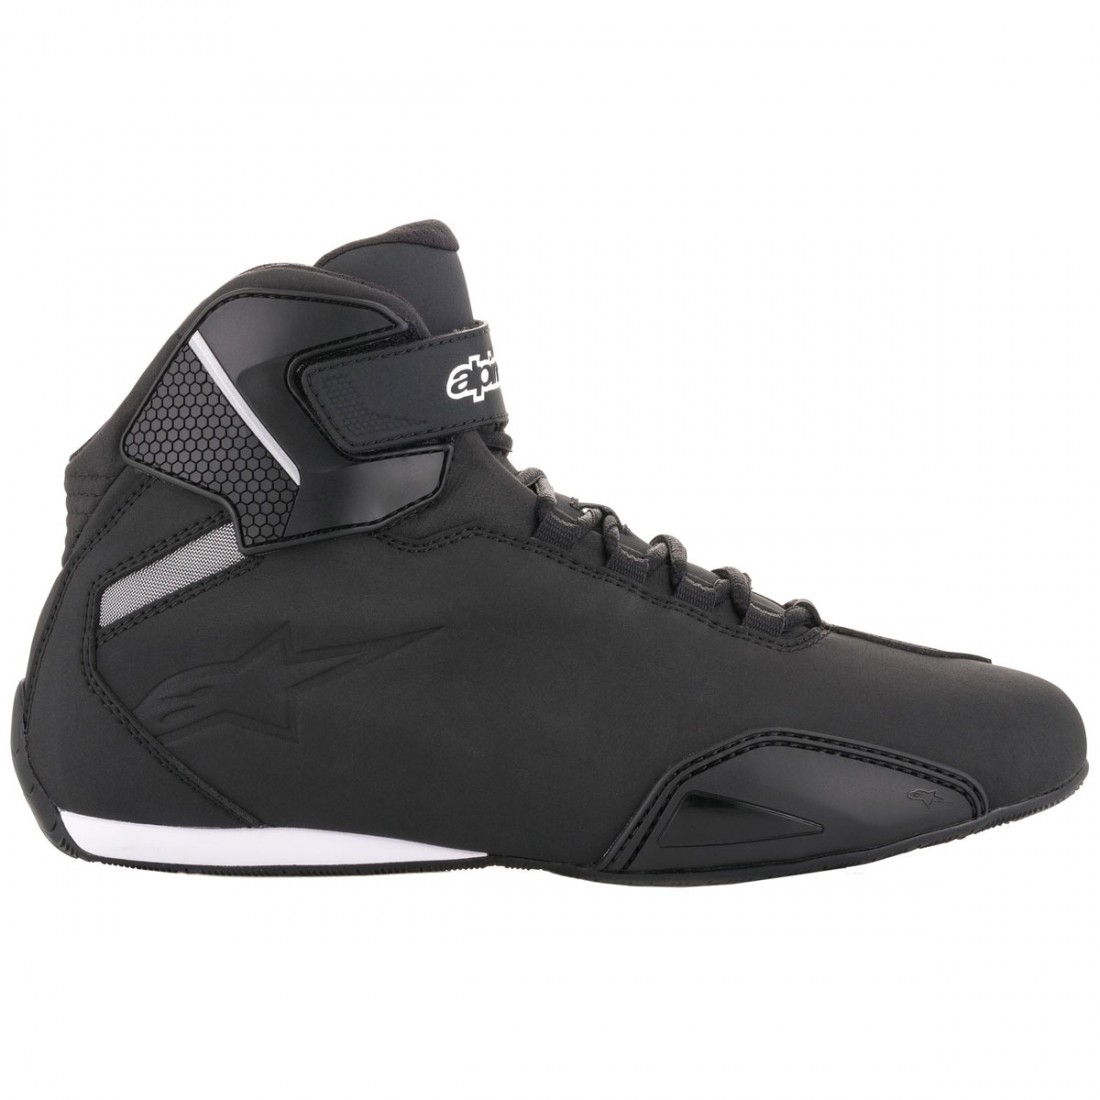 Bottes ALPINESTARS Faster-2 Black / White 13 (EU 47)